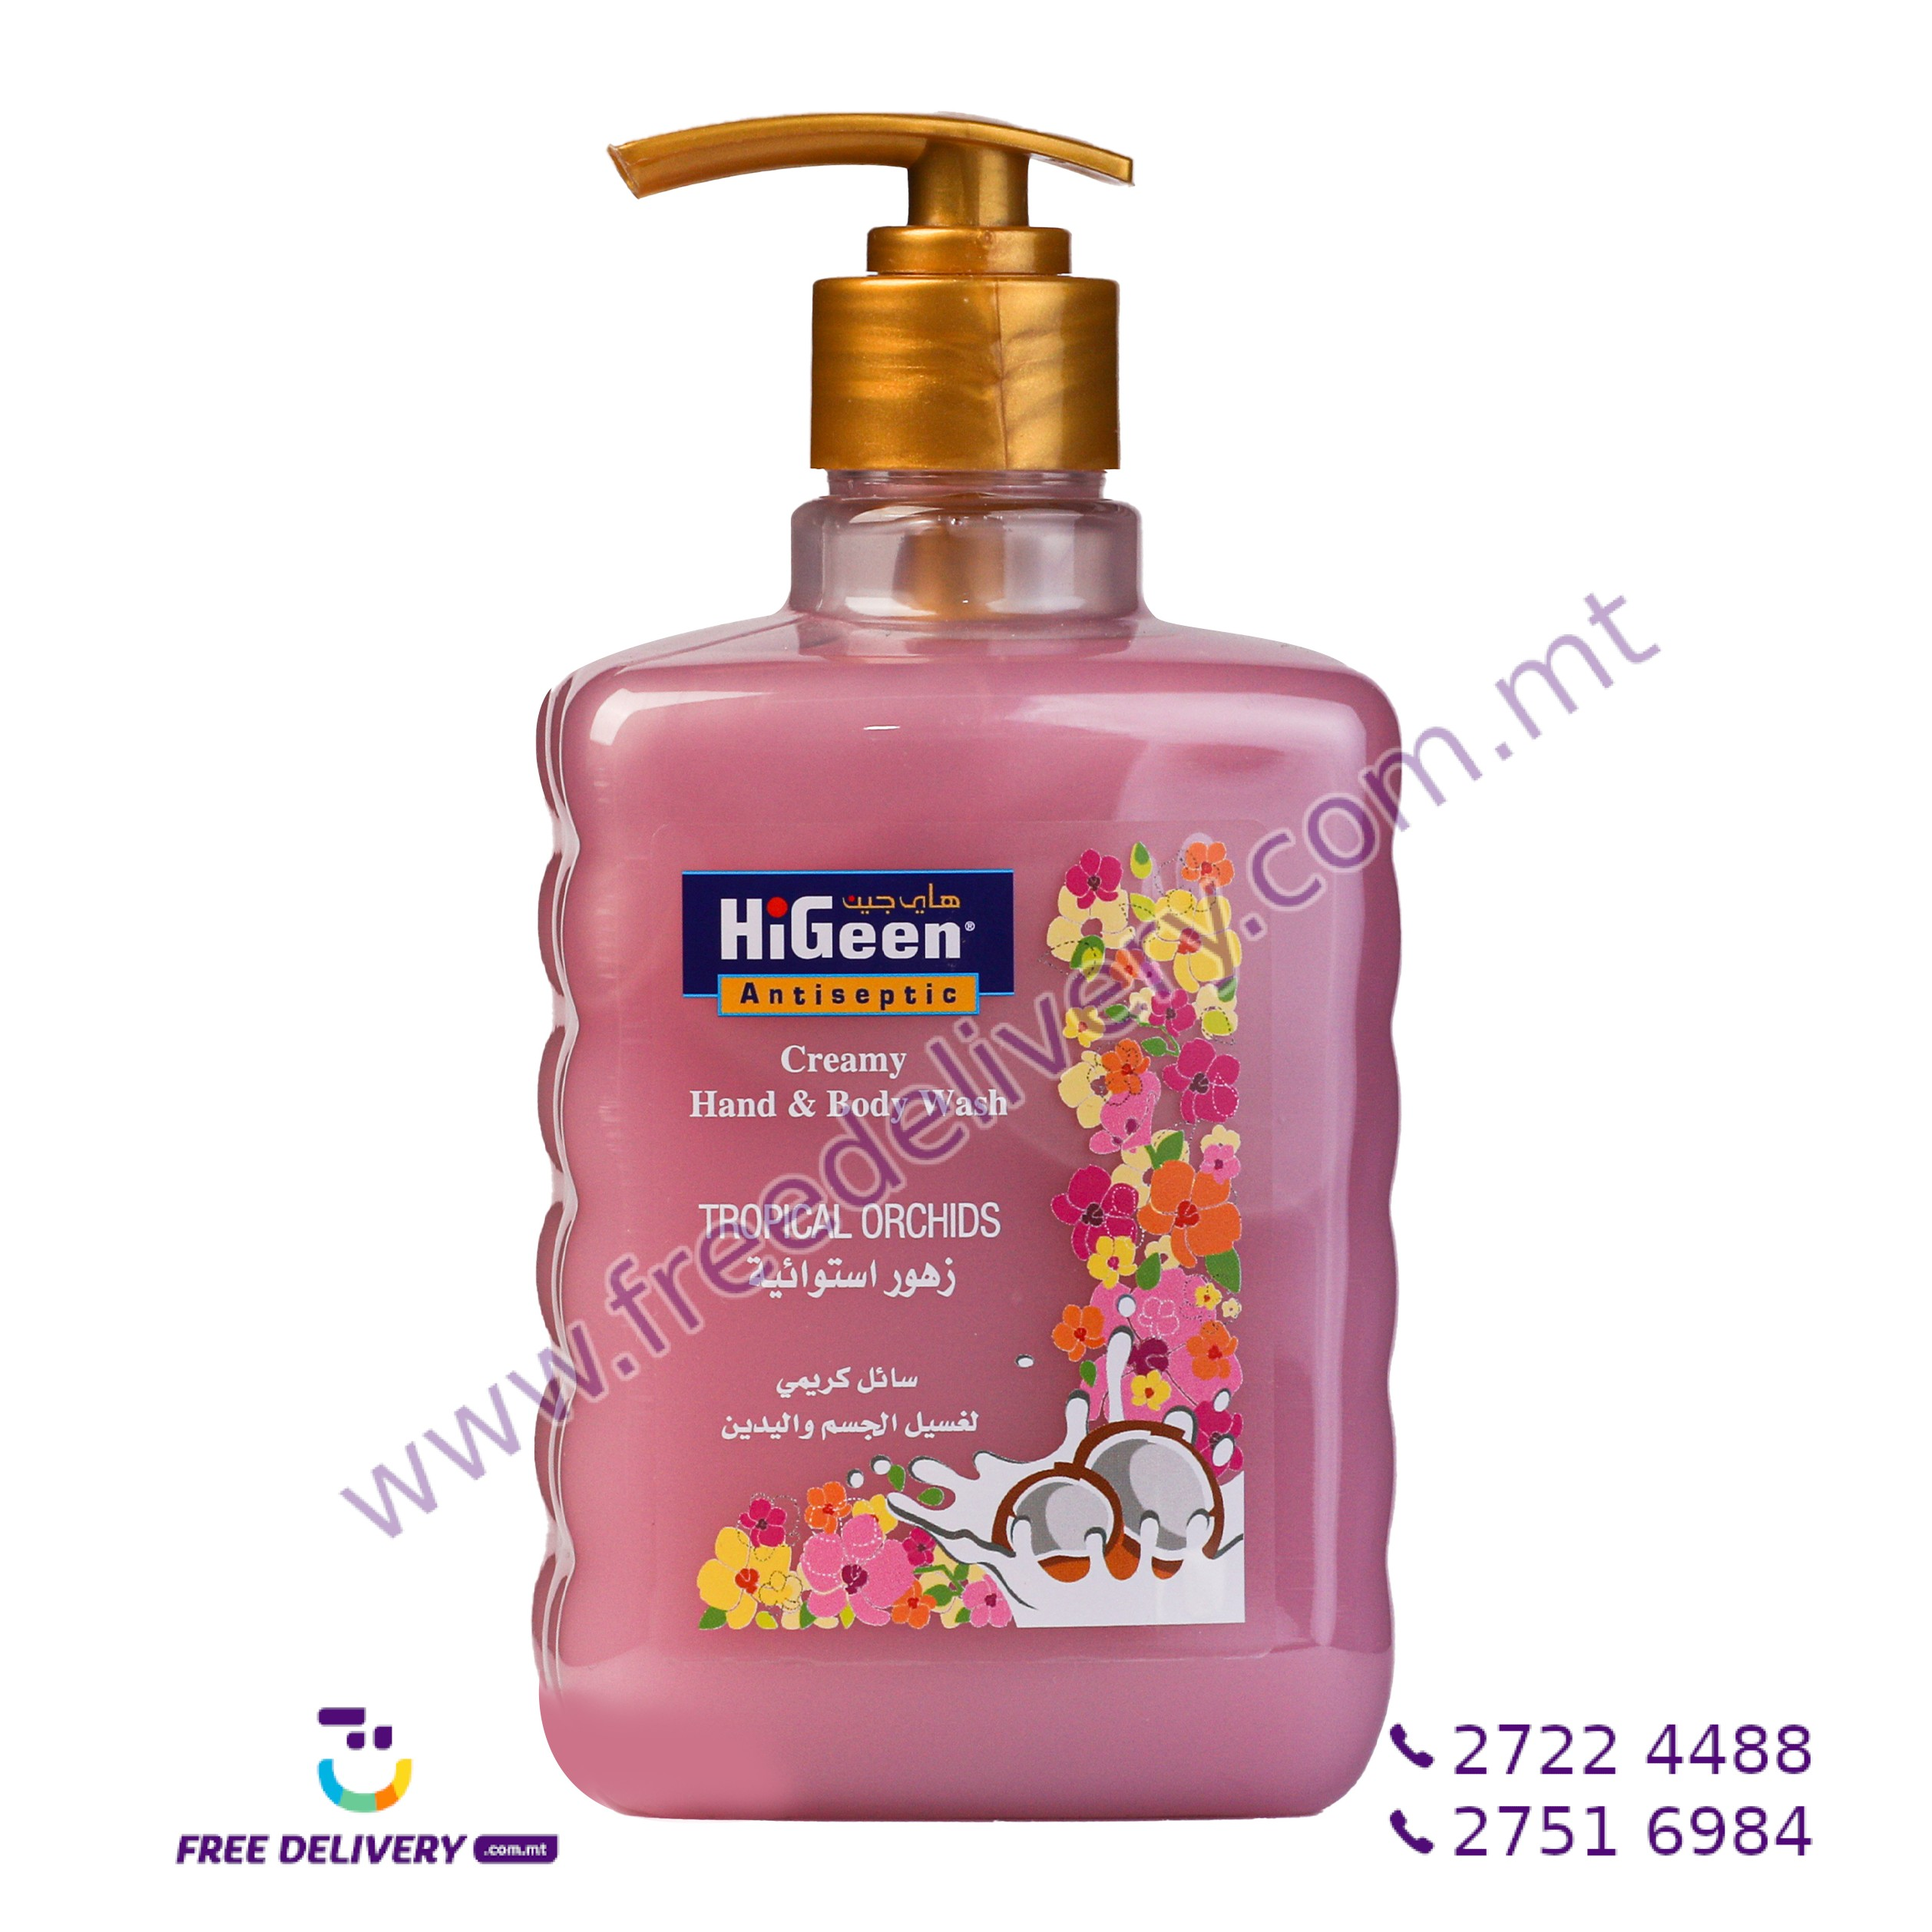 HIGEEN CREAMY HAND & BODY WASH TROPICAL ORCHIDS 500ML HI003189